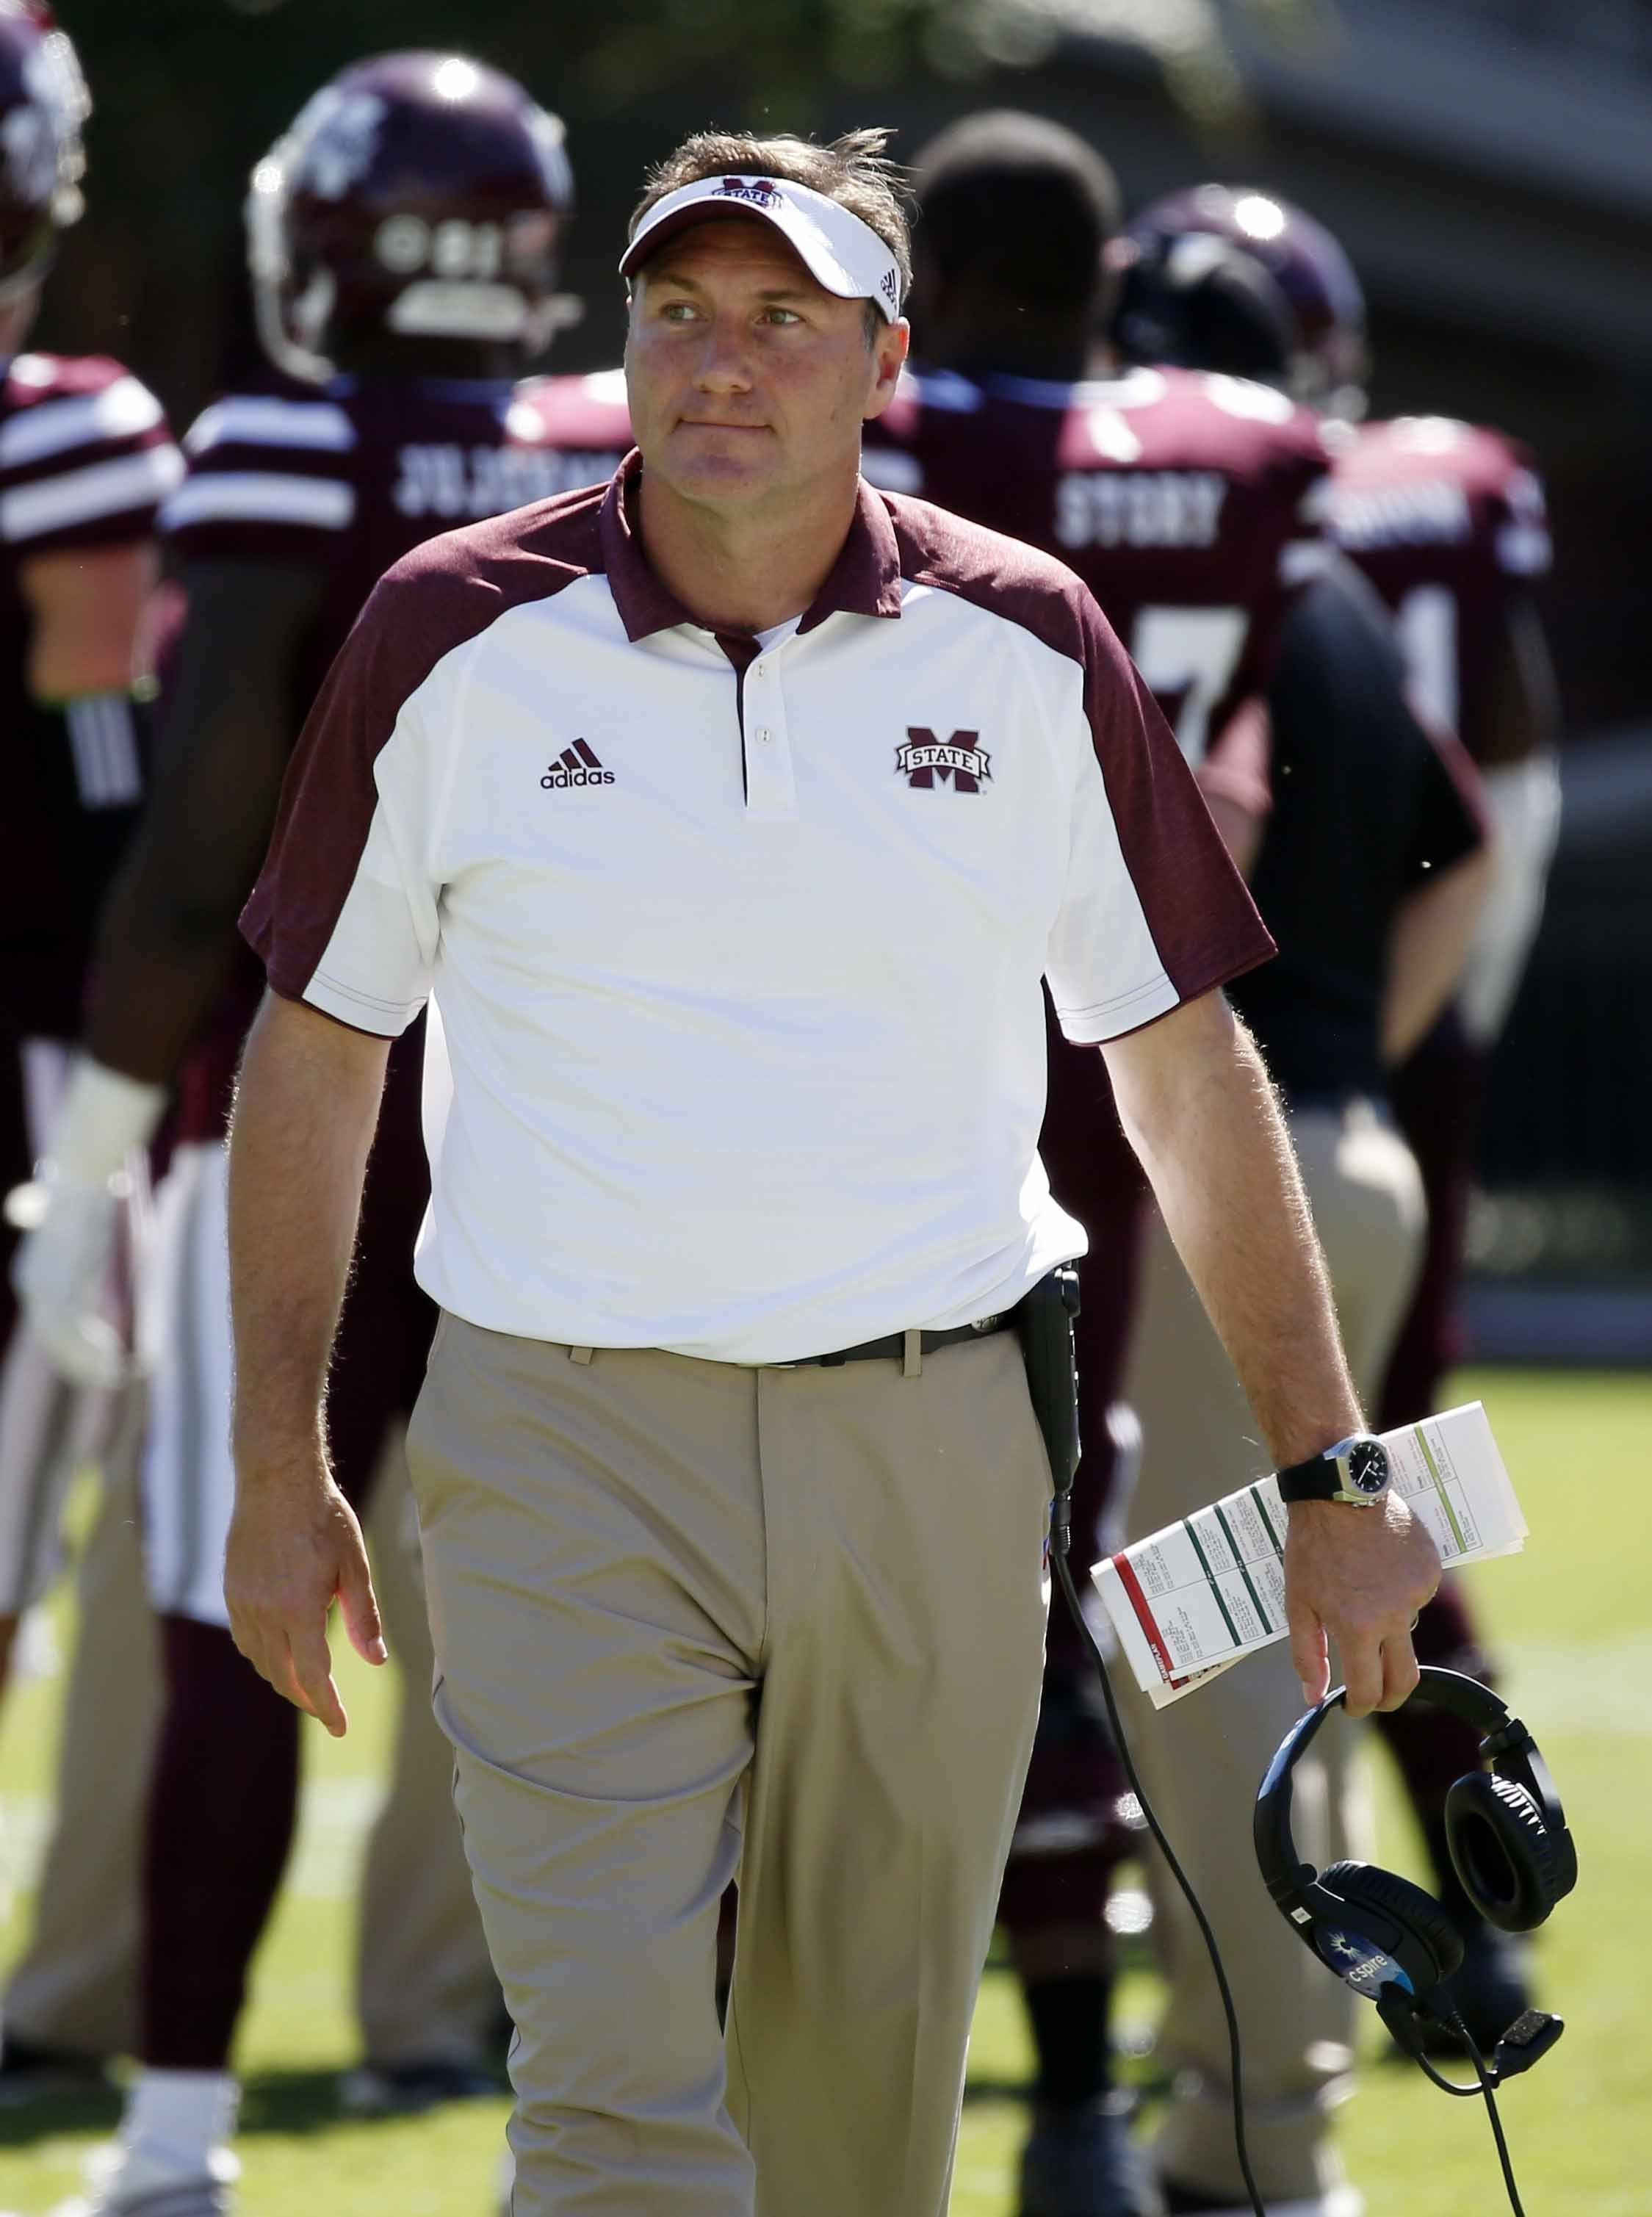 Mississippi State head coach Dan Mullen looks downfield in the second half of an NCAA college football game against Auburn, Saturday, Oct. 8, 2016, in Starkville, Miss. Auburn won 38-14. (AP Photo/Rogelio V. Solis)